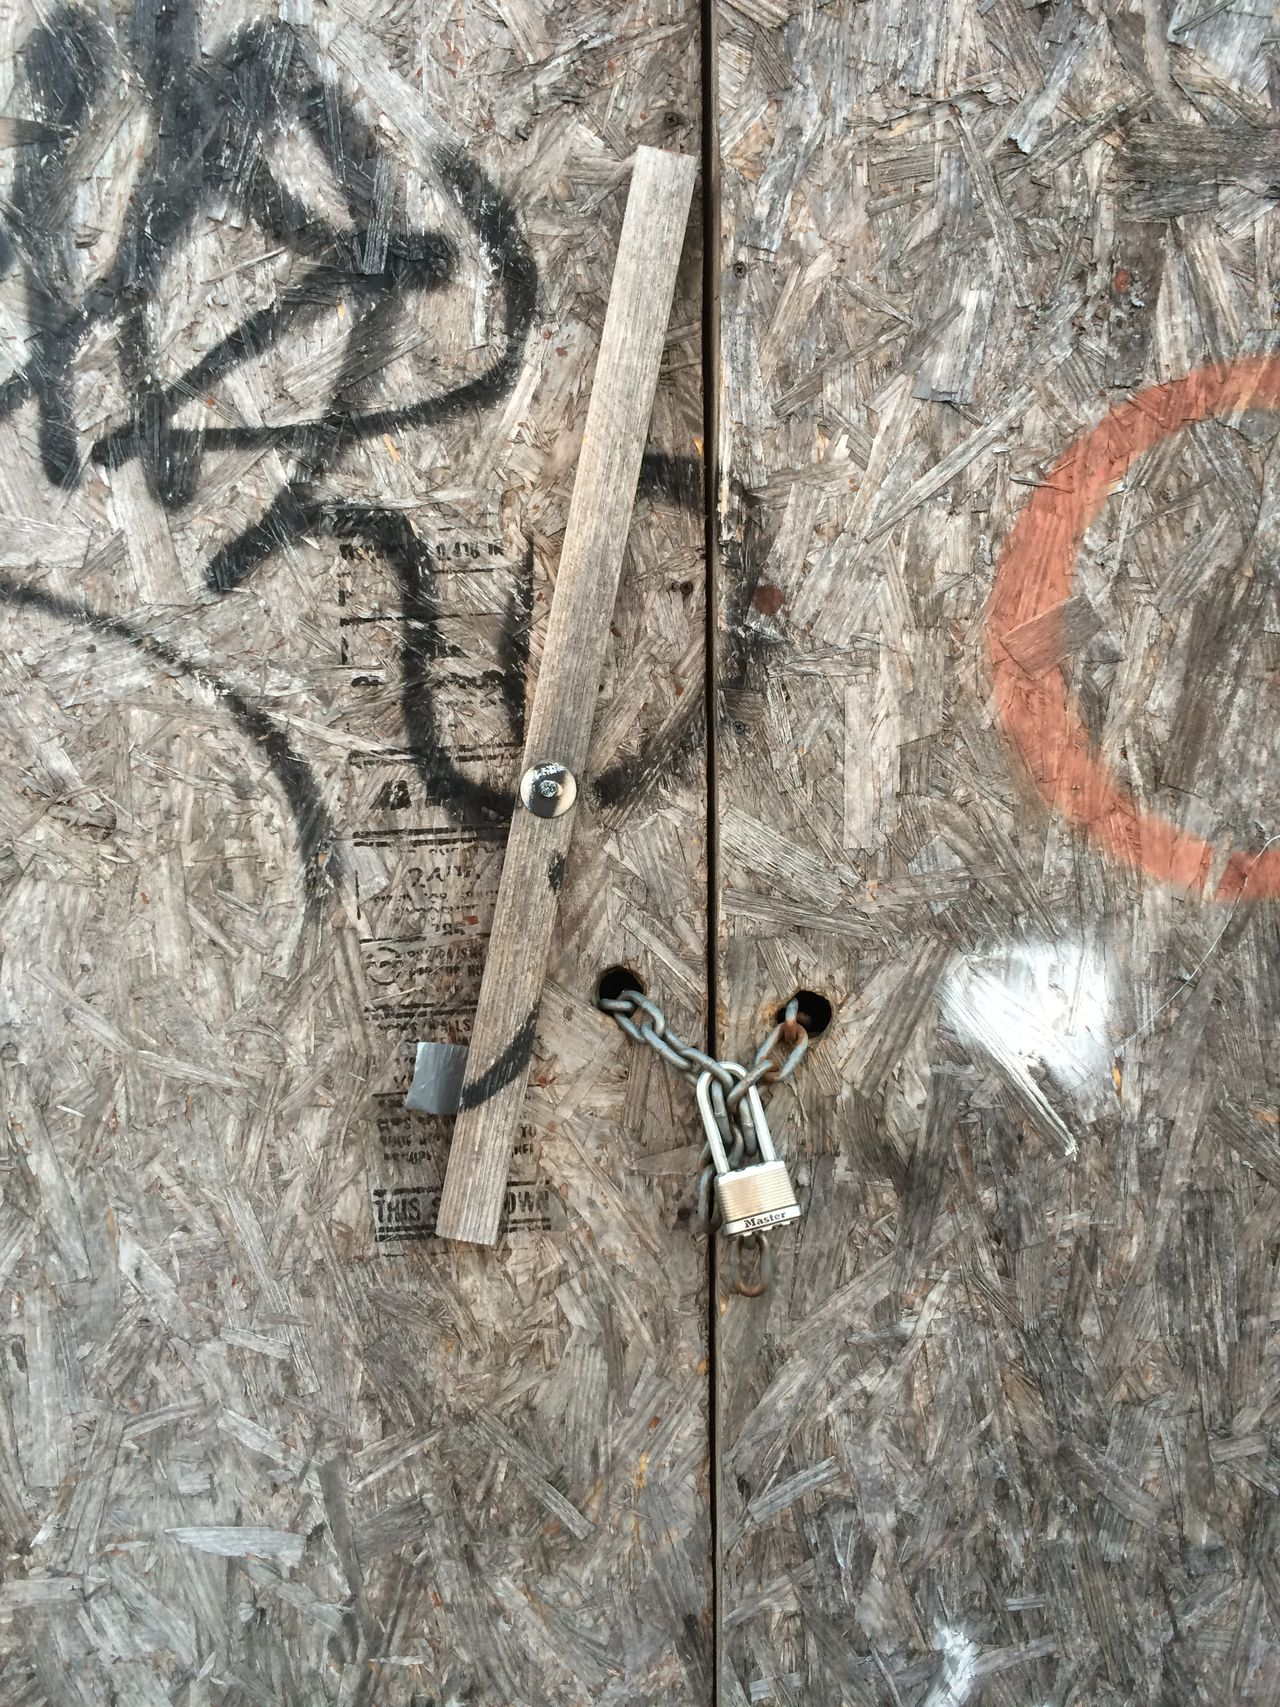 Construction Fence Lock